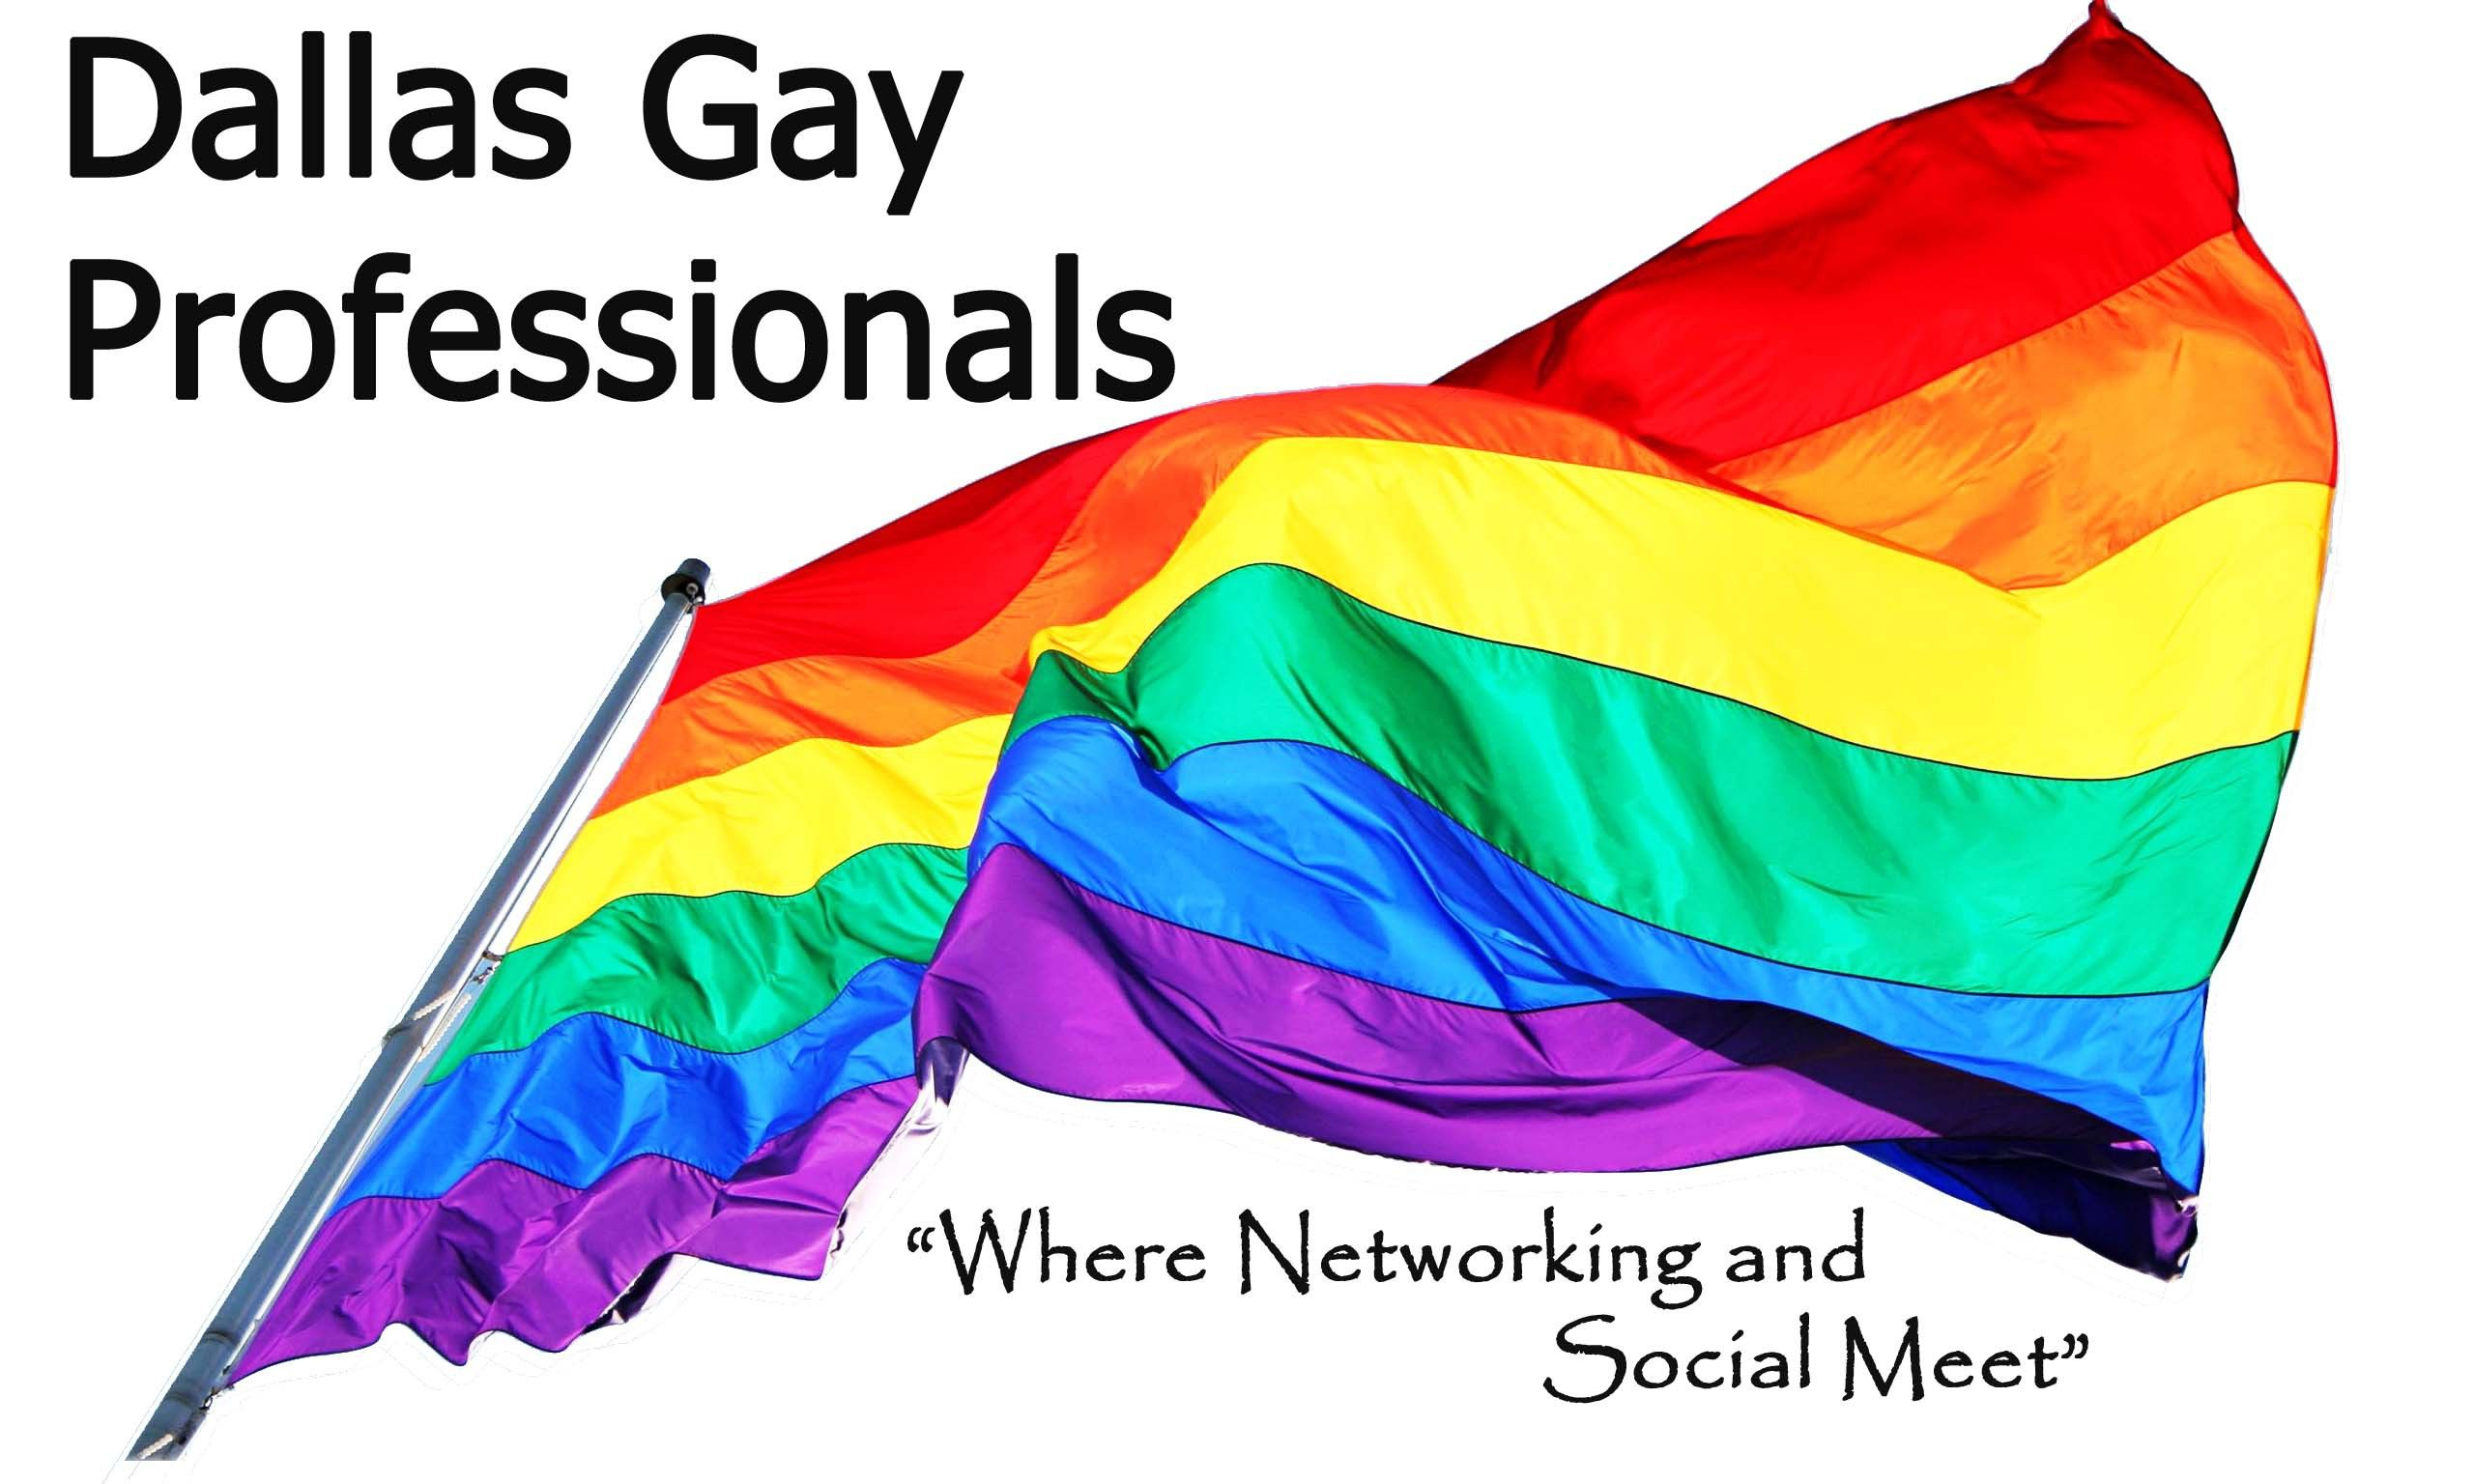 from Huxley dallas gay professionals